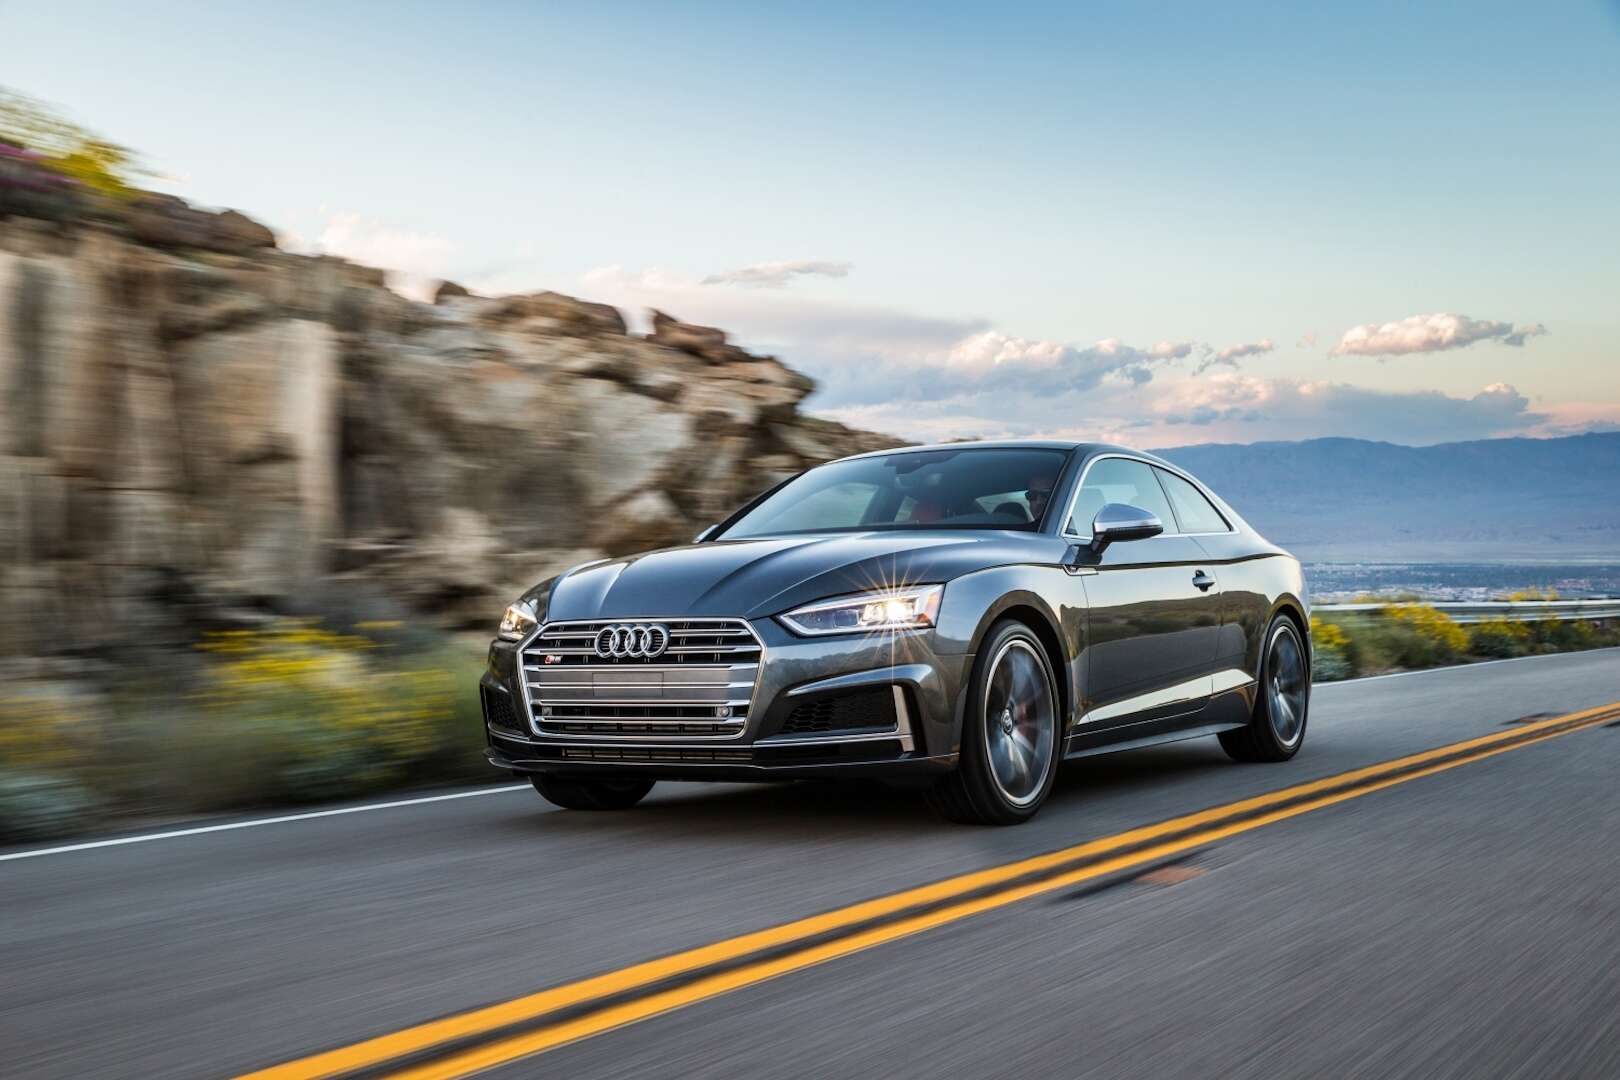 Audi S Coupe Test Drive Review Another TwoDoor Car In Danger - Audi luxury cars